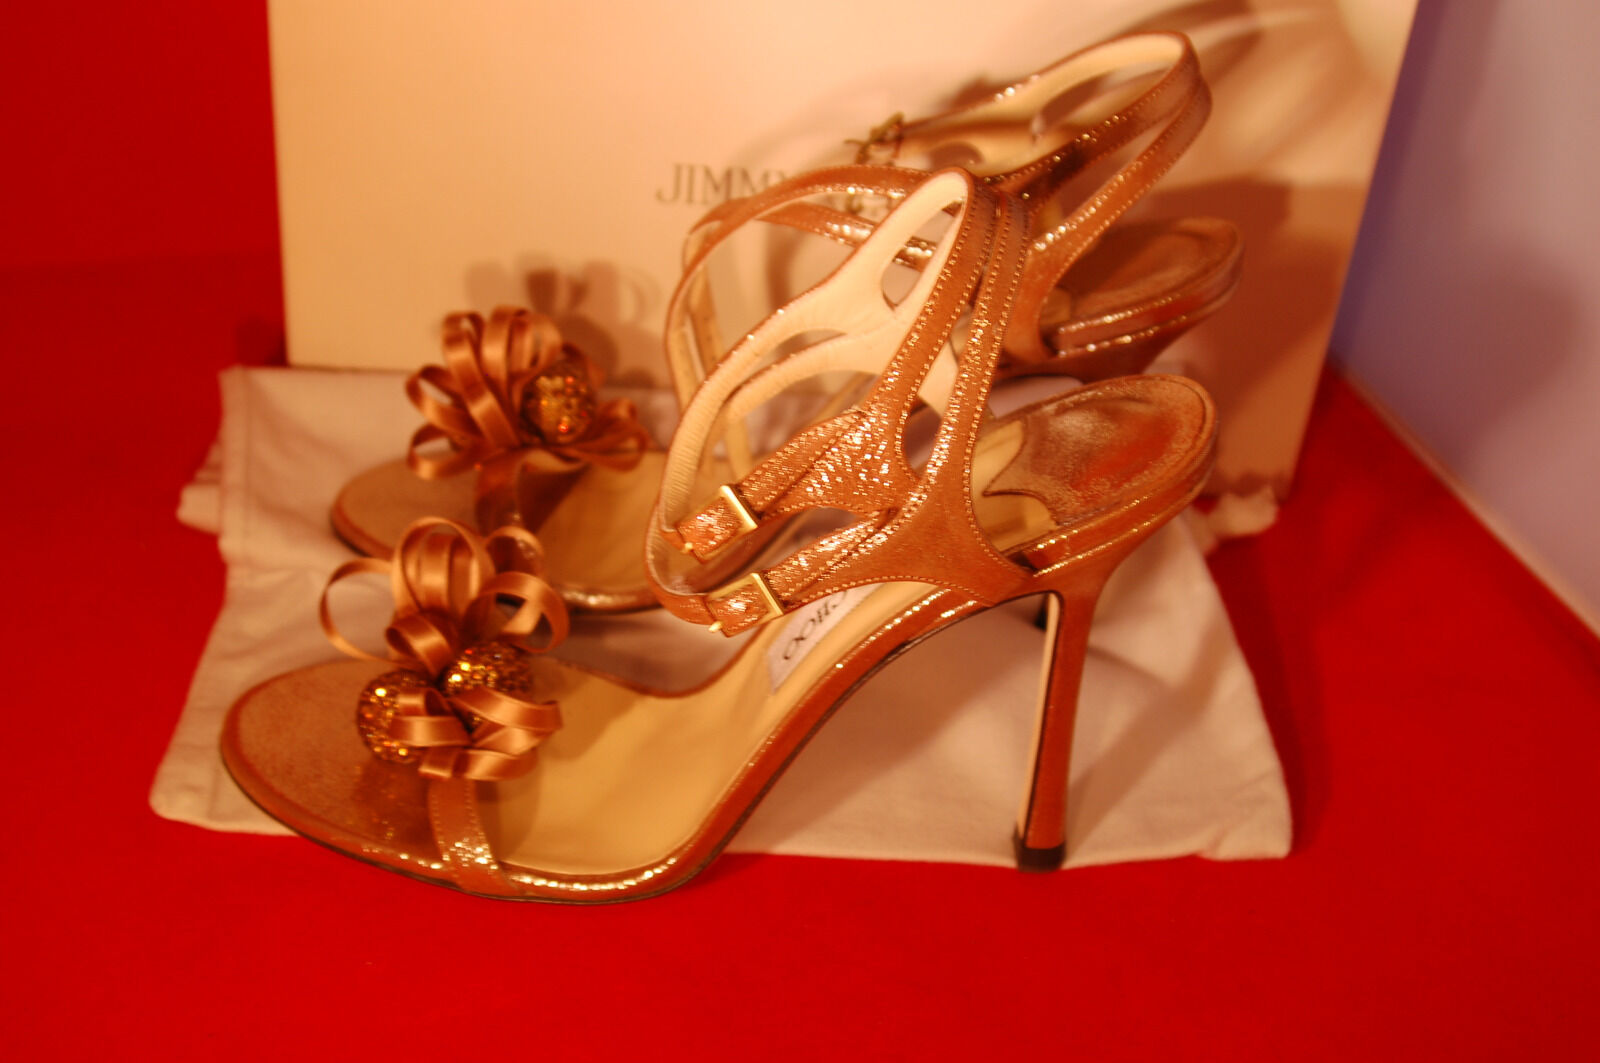 Jimmy Choo high heel sandals 1 Größe 39 1 sandals 2 Gold de62ad